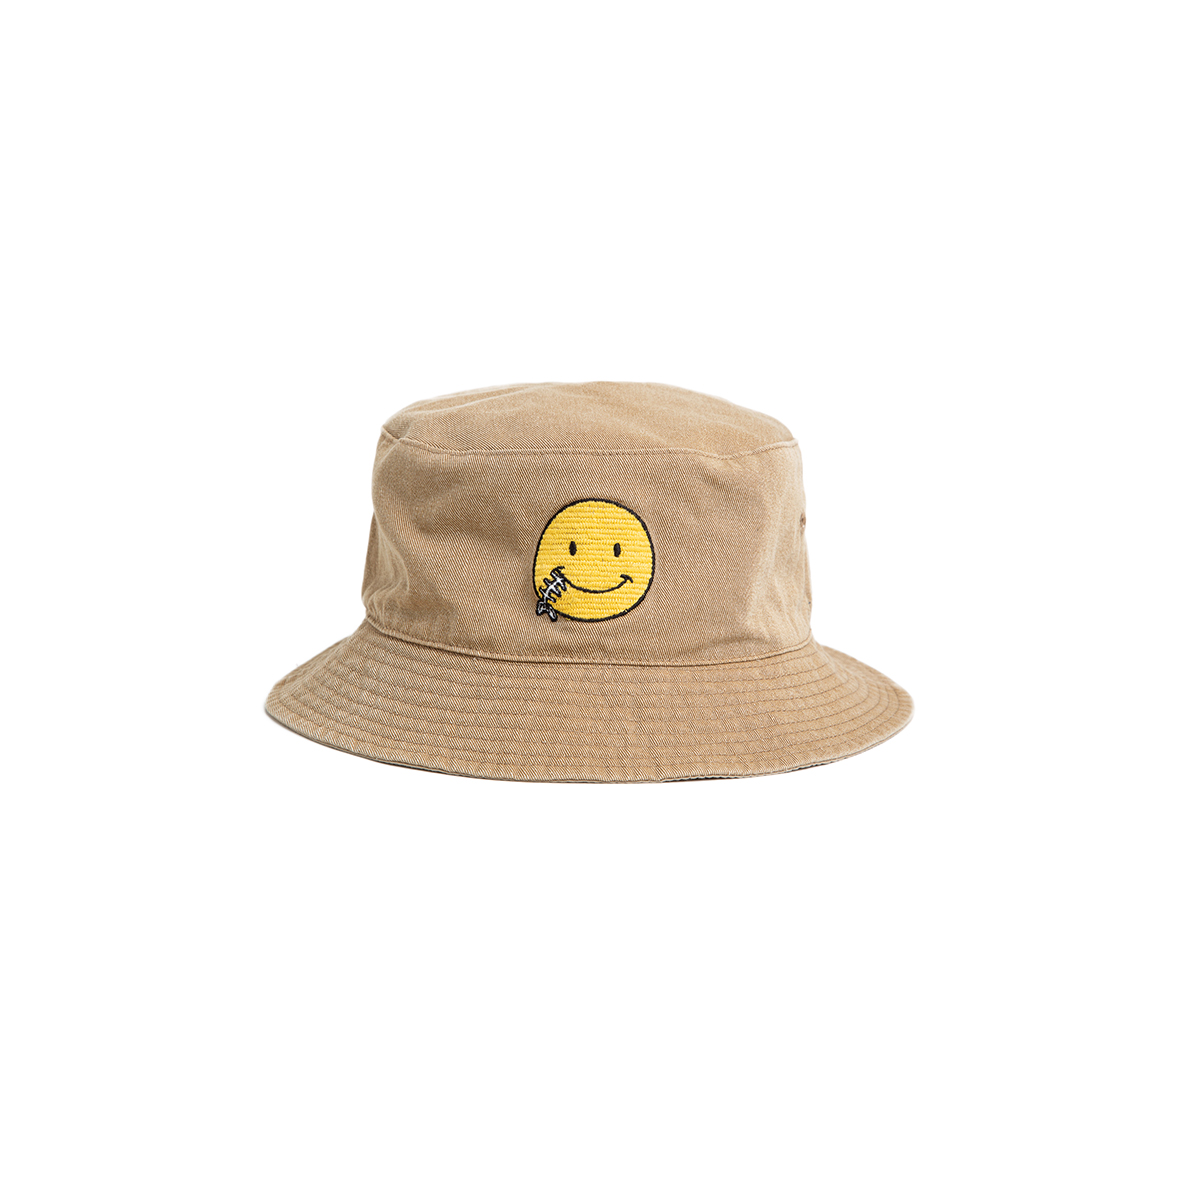 "Reversible Needle Bucket_SMILE ""SAND BEIGE"" 자수가 촘촘히 들어간 버킷[50% off]"